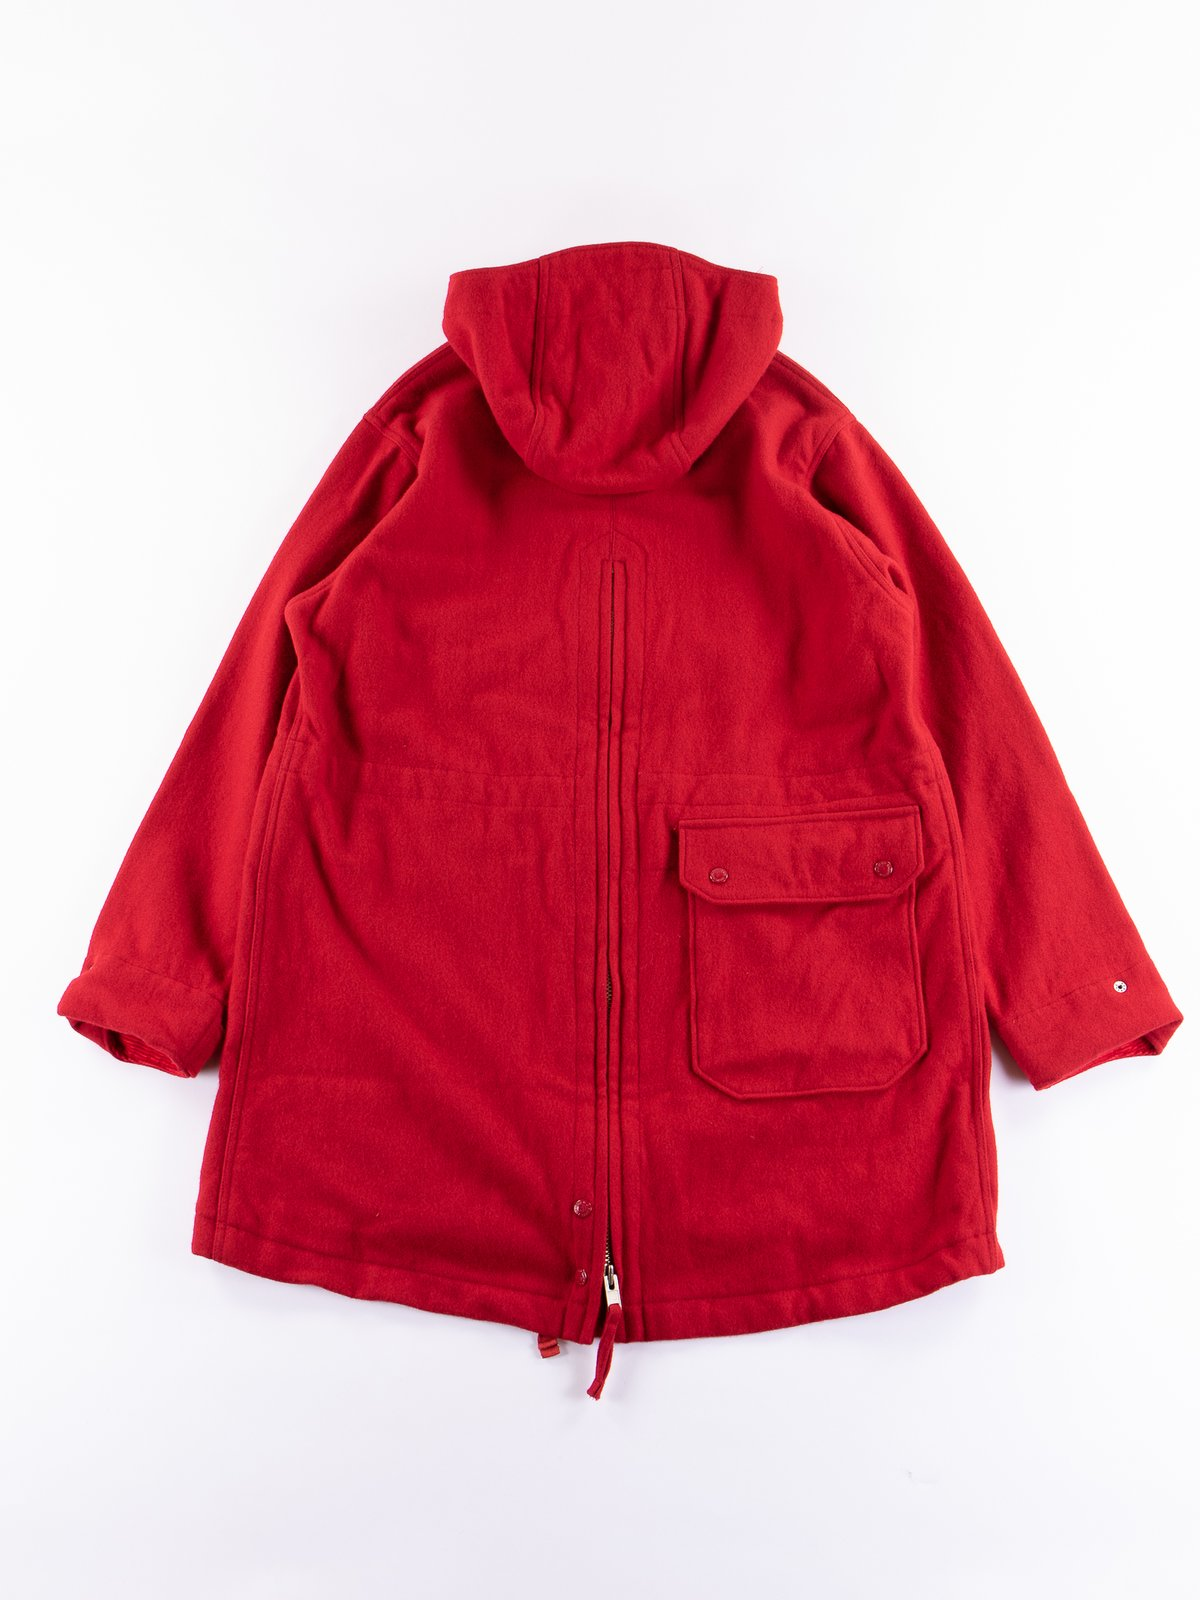 Red Wool Melton Over Parka - Image 5